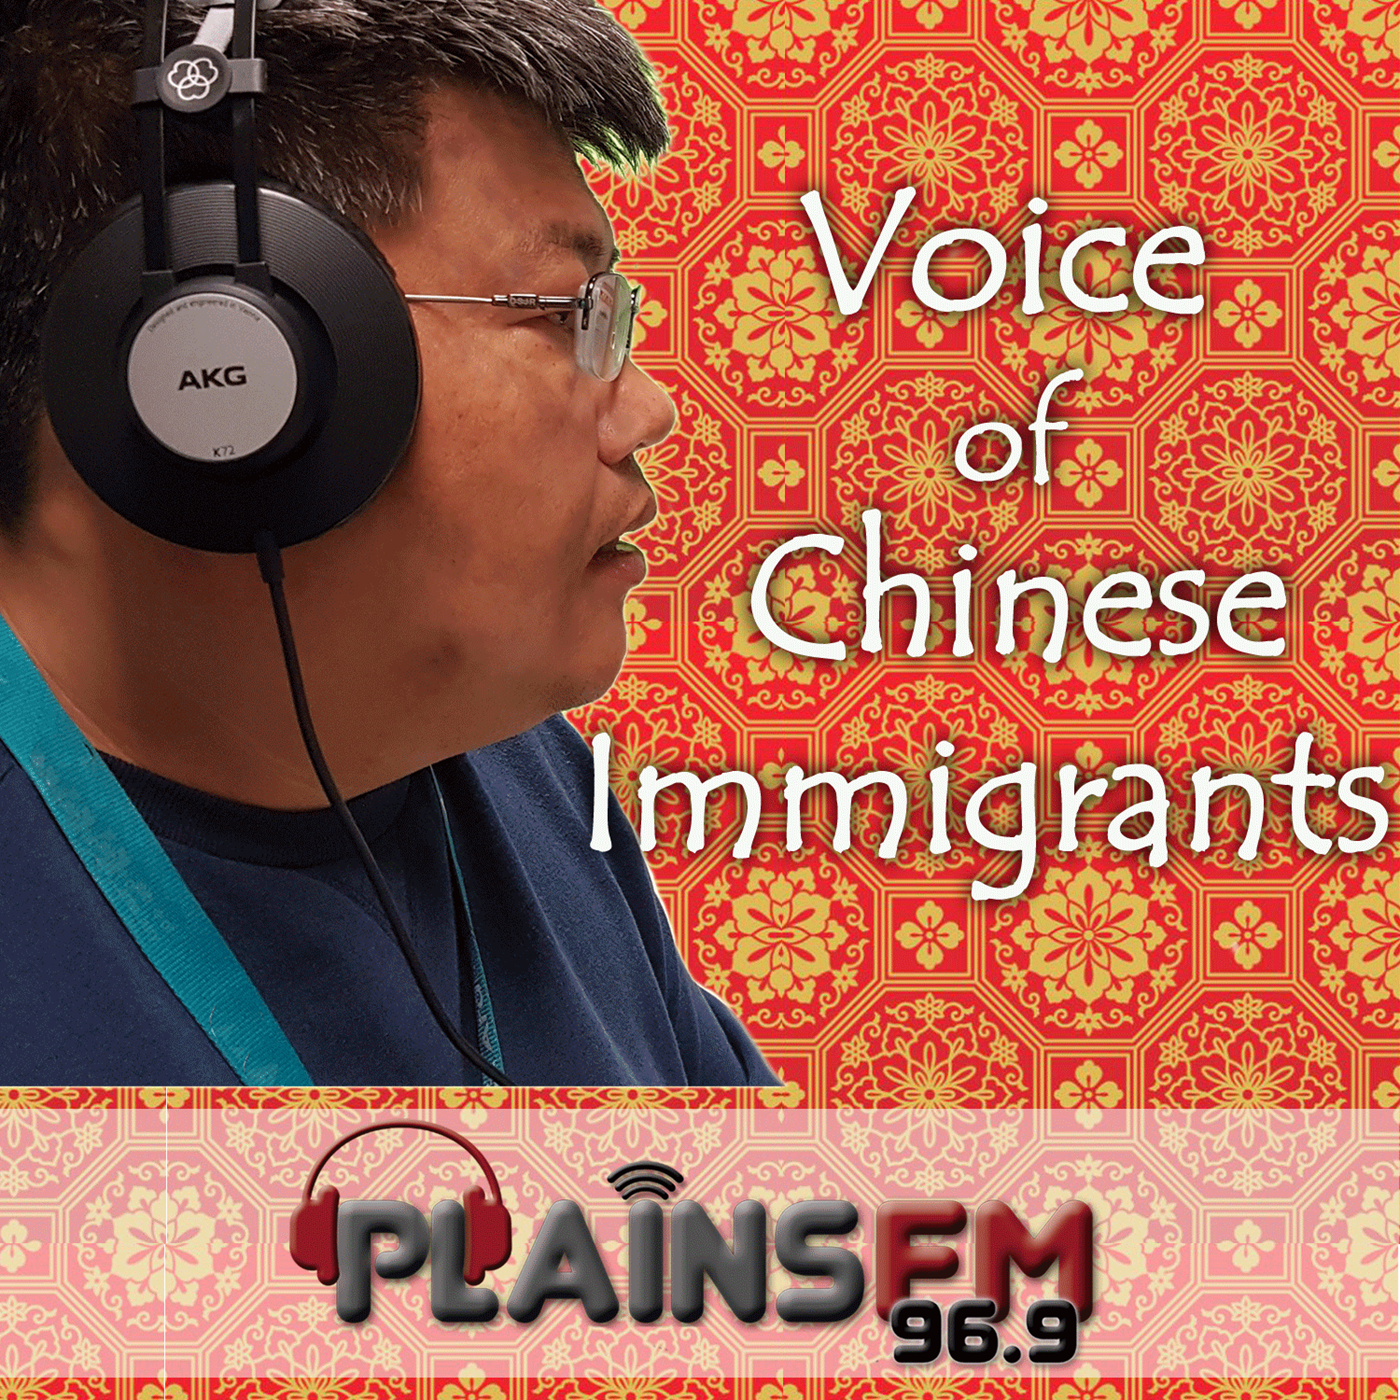 https://cdn.accessradio.org/StationFolder/plainsfm/Images/VoiceofChineseImmigrants.png